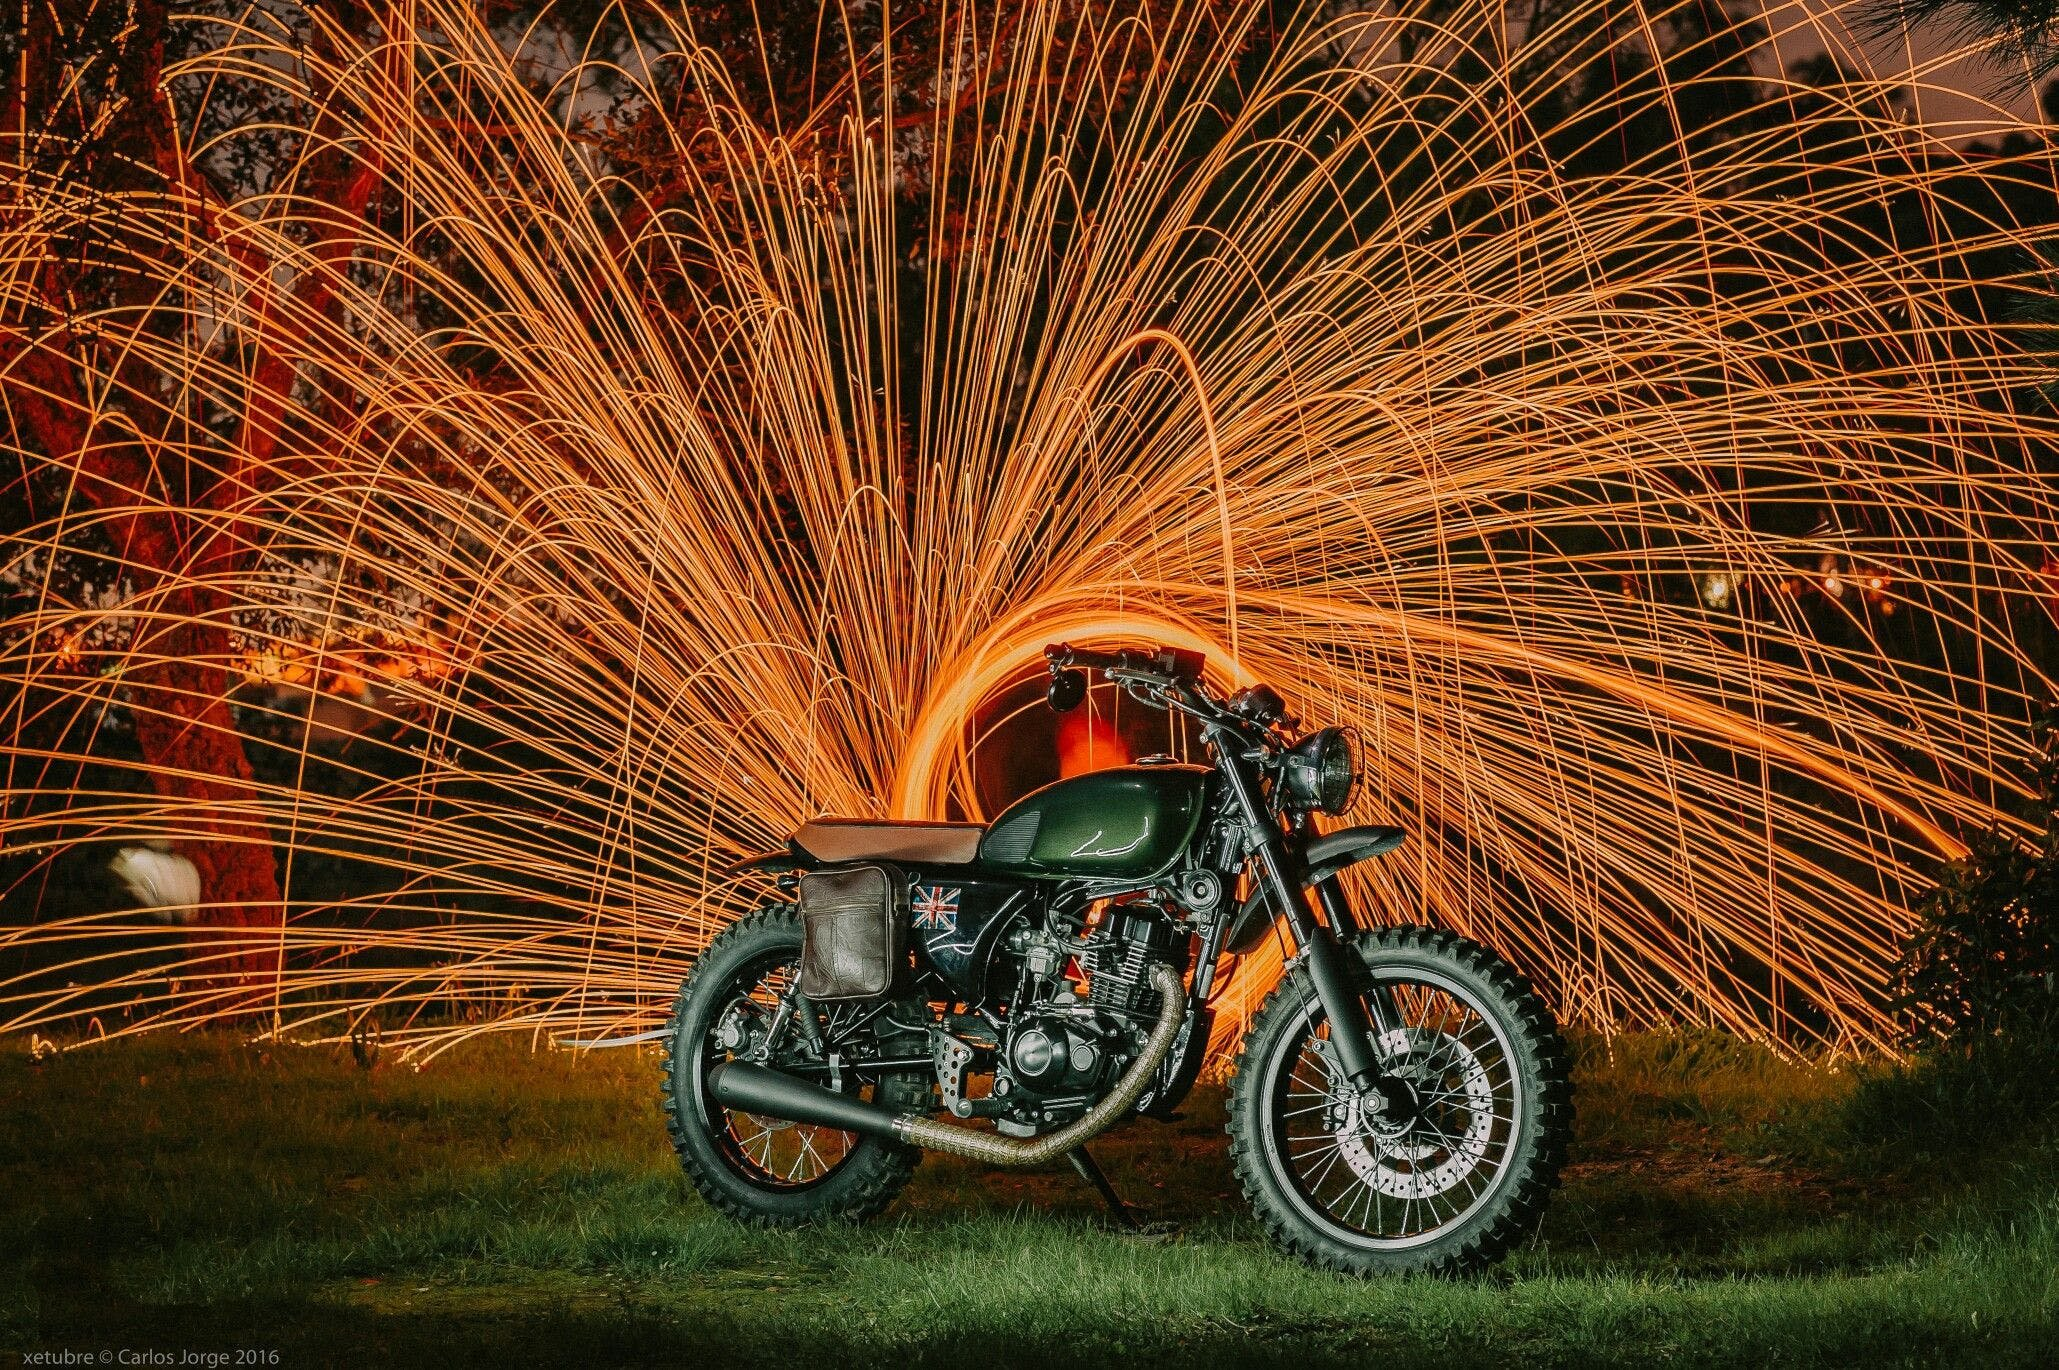 Old school motorcycle with orange fireworks in the background